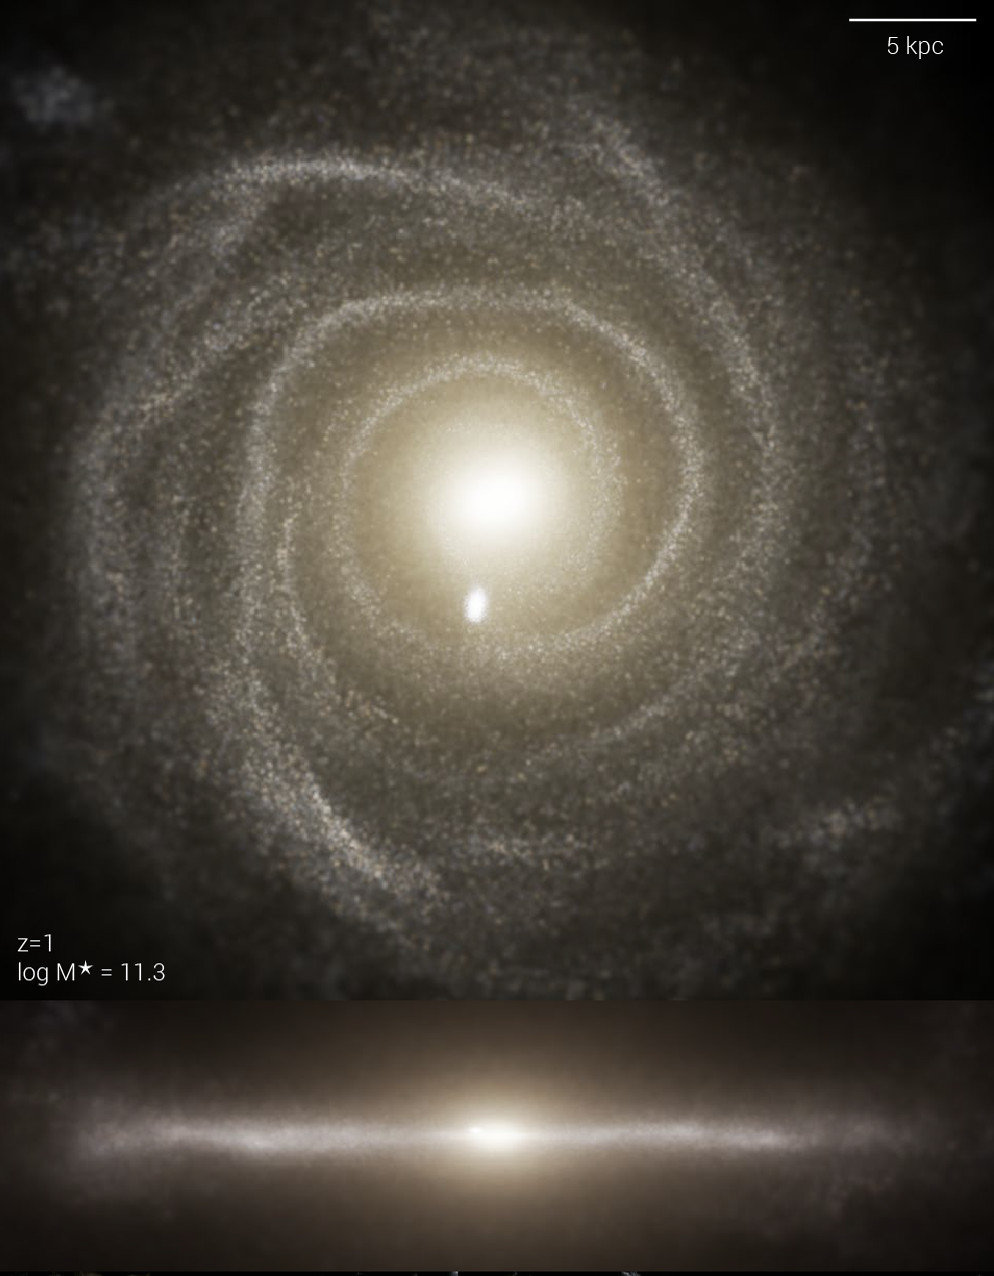 The TNG simulations model the univers from the large-scale cosmic structure right down to the substructure of galaxies.